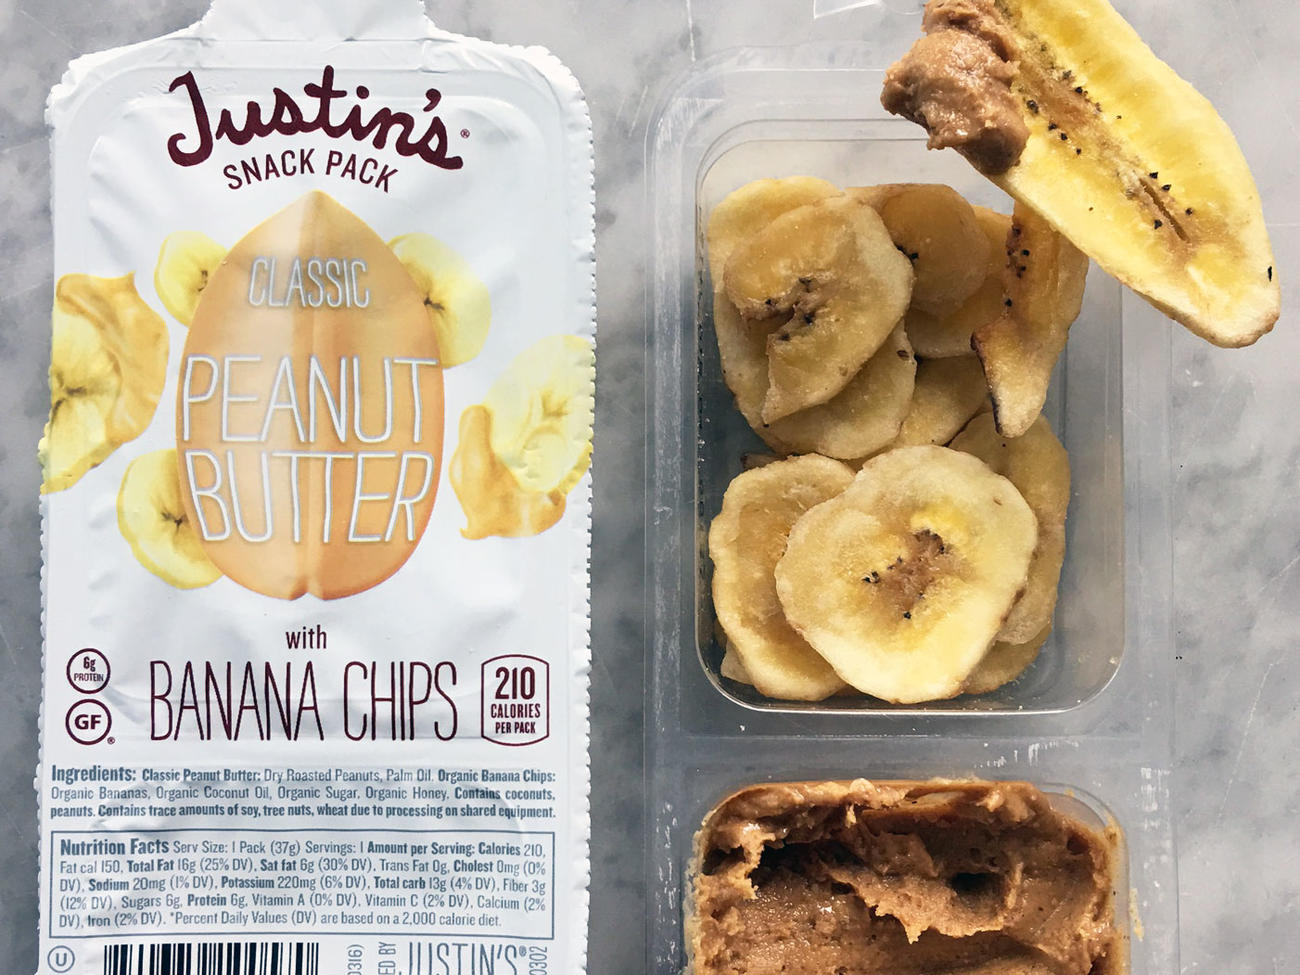 Justin's Snack Pack - Peanut Butter with Banana Chips